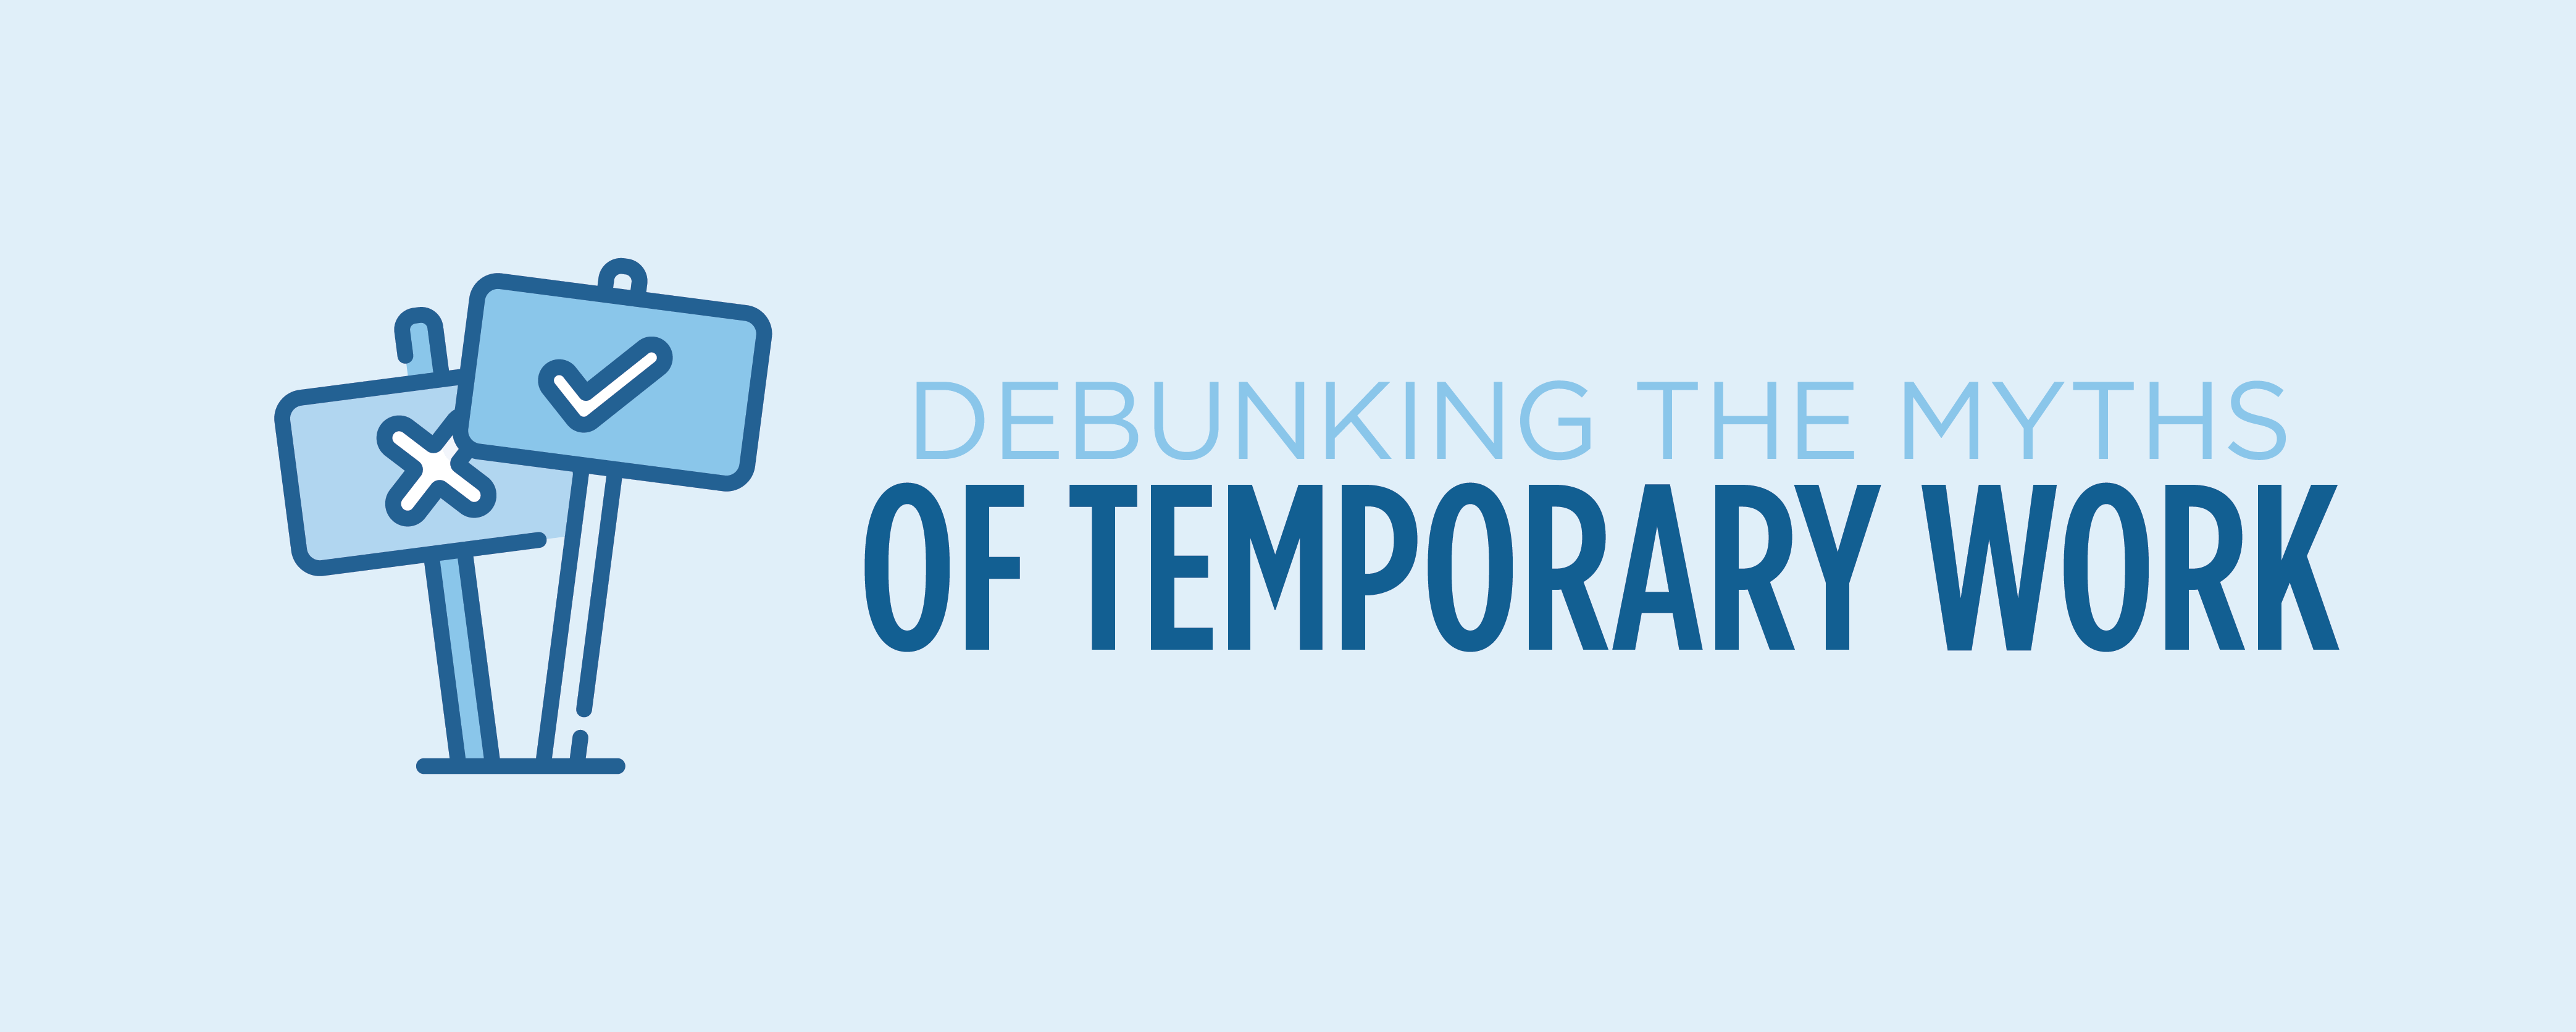 debunking the myths of temporary work